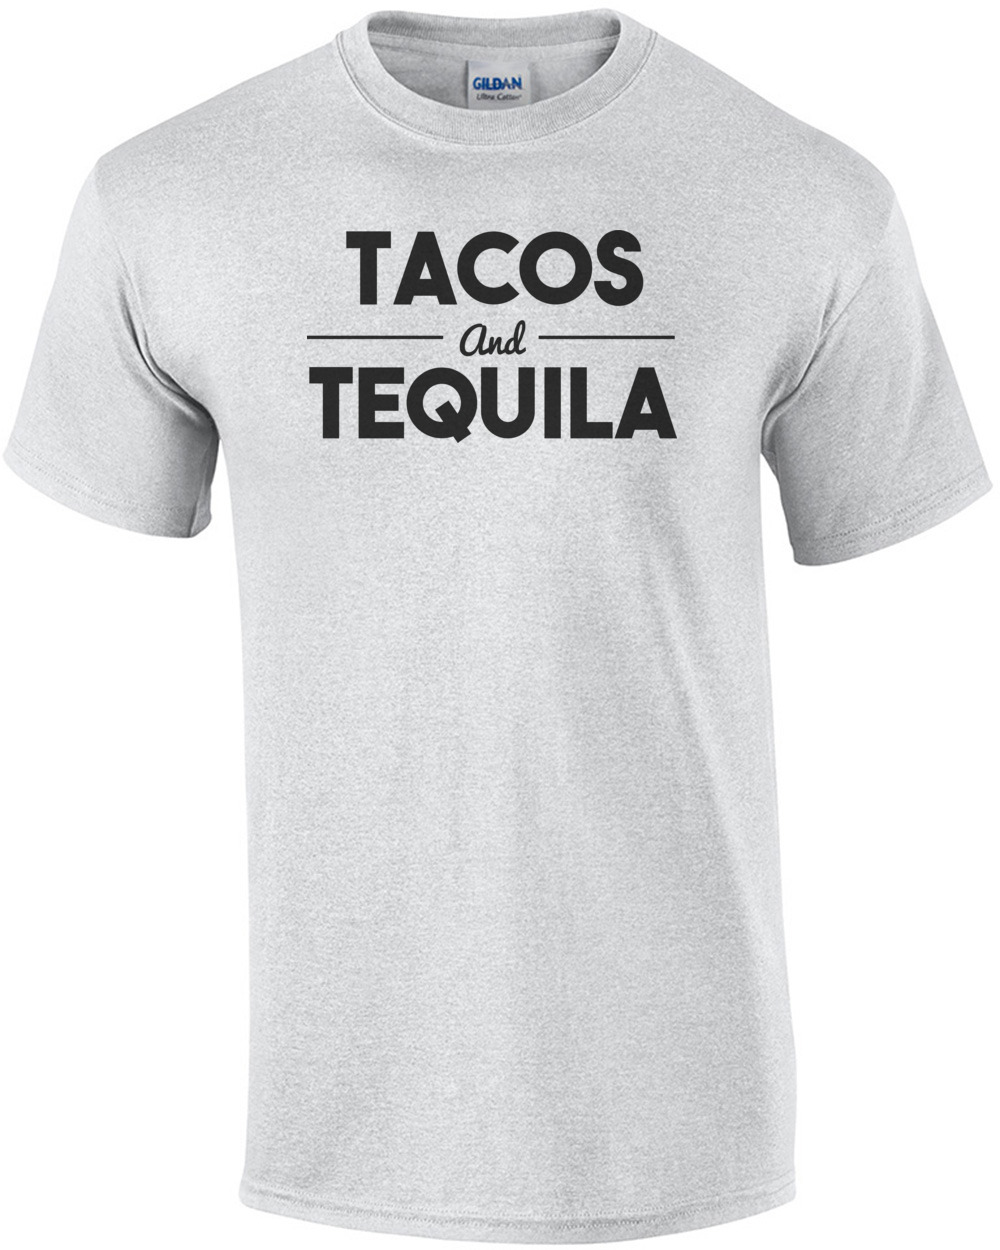 ed919d4e8 tacos-and-tequila-tshirt-mens-regular-ash.jpg